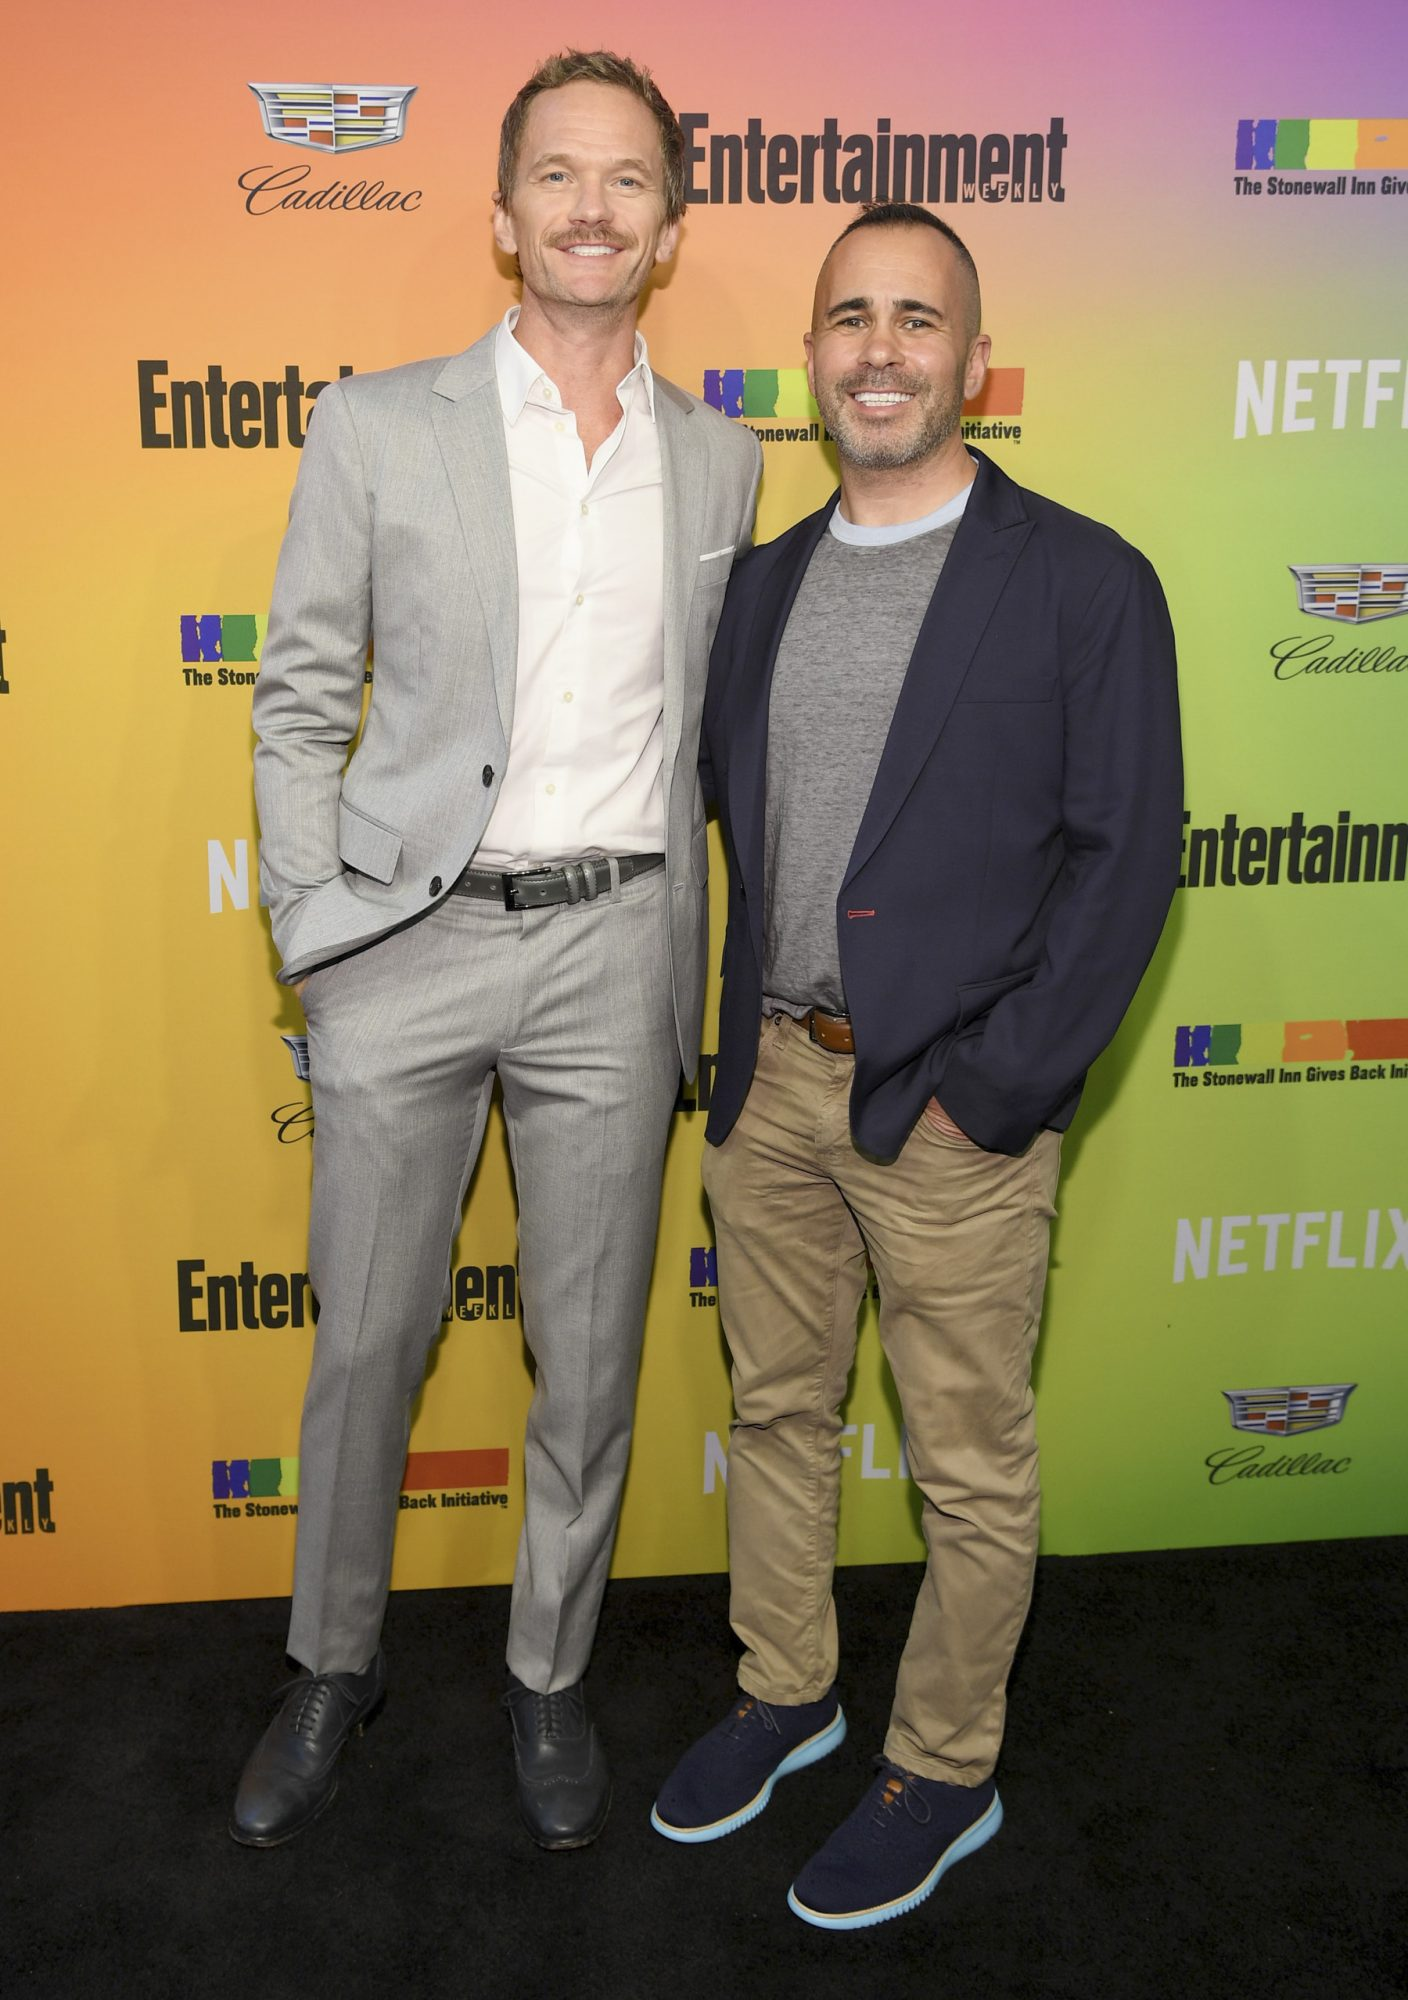 NEW YORK, NEW YORK - JUNE 05: (L) Neil Patrick Harris and Entertainment Weekly Editor in Chief Henry Goldblatt attend as Entertainment Weekly Celebrates Its Annual LGBTQ Issue at the Stonewall Inn on June 05, 2019 in New York City. (Photo by Dimitrios Kambouris/Getty Images for Entertainment Weekly)